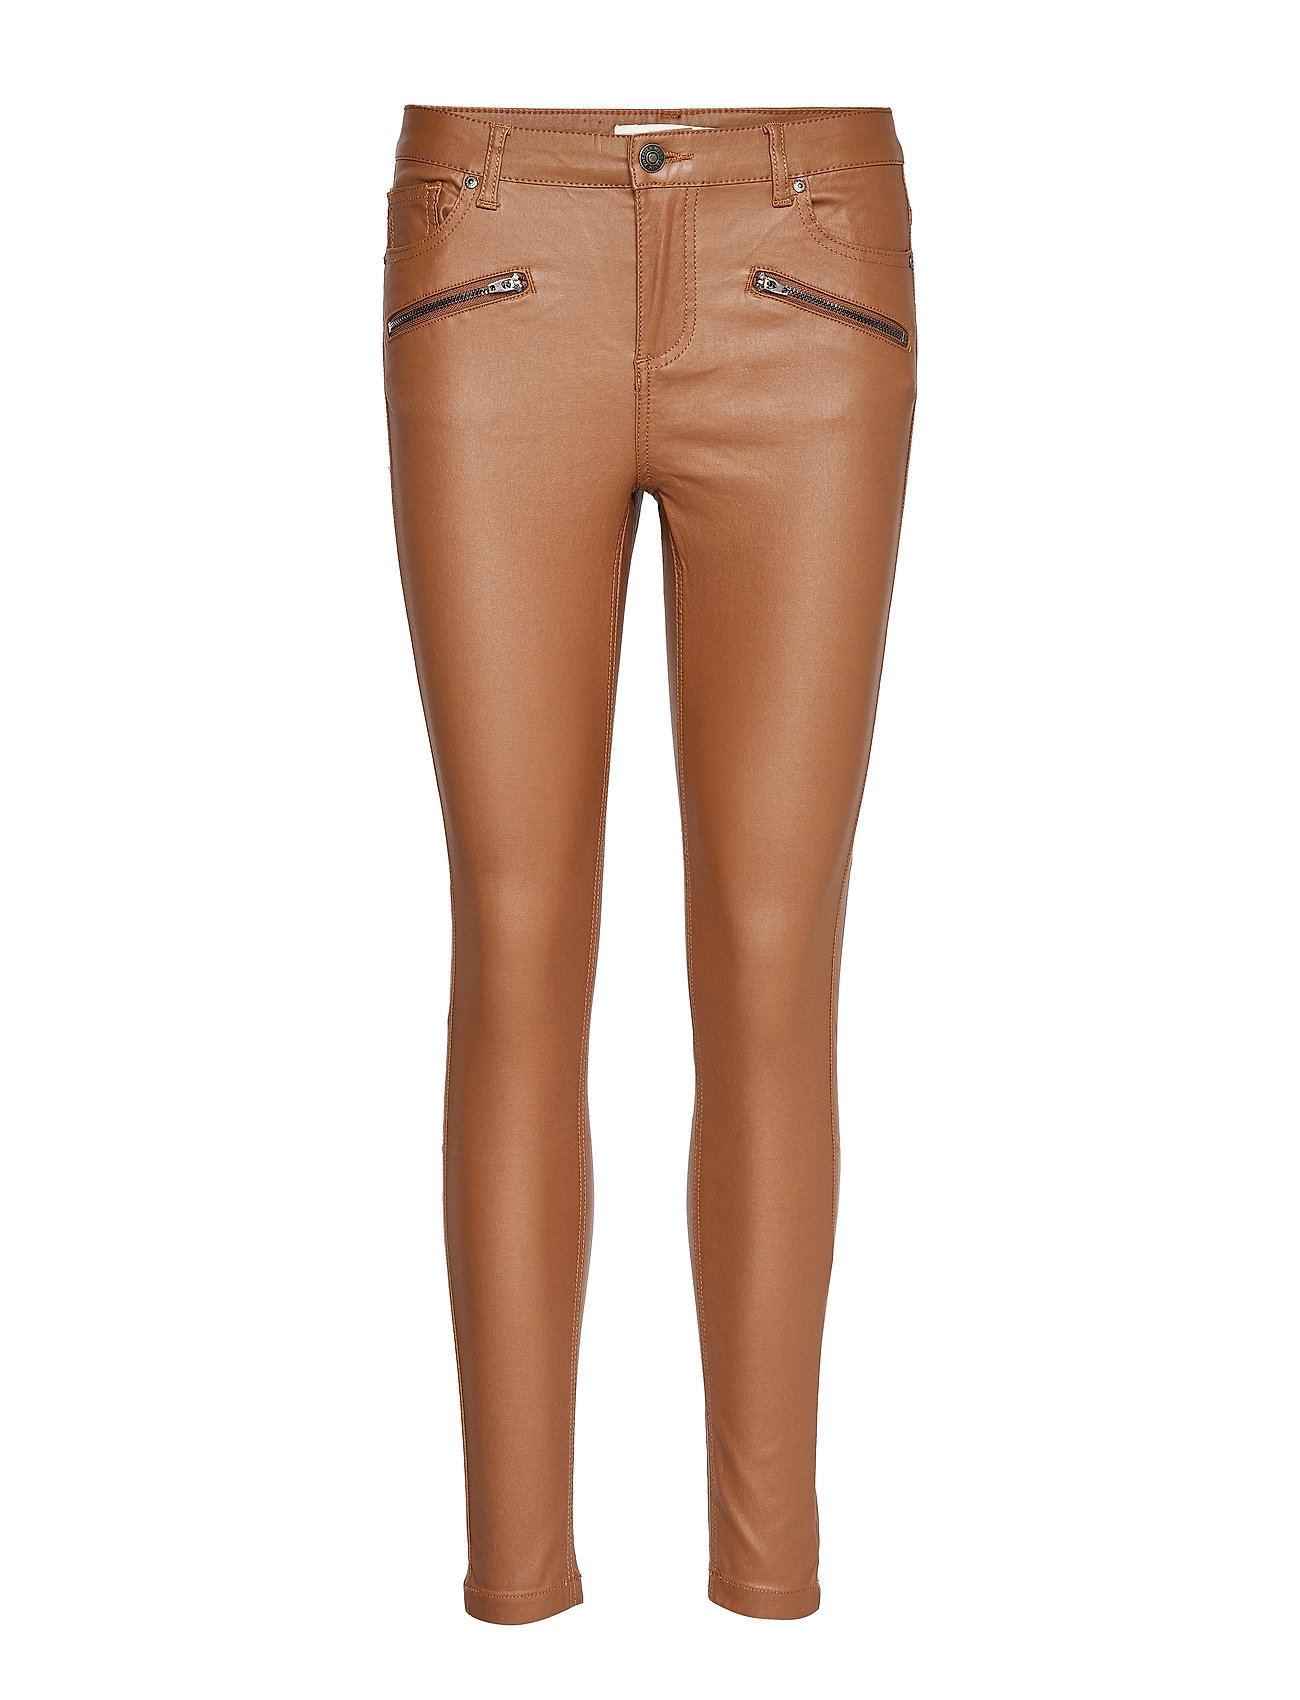 b.young BYLOLA BYKIKO DECO ZIP - - GOLDEN TOFFEE